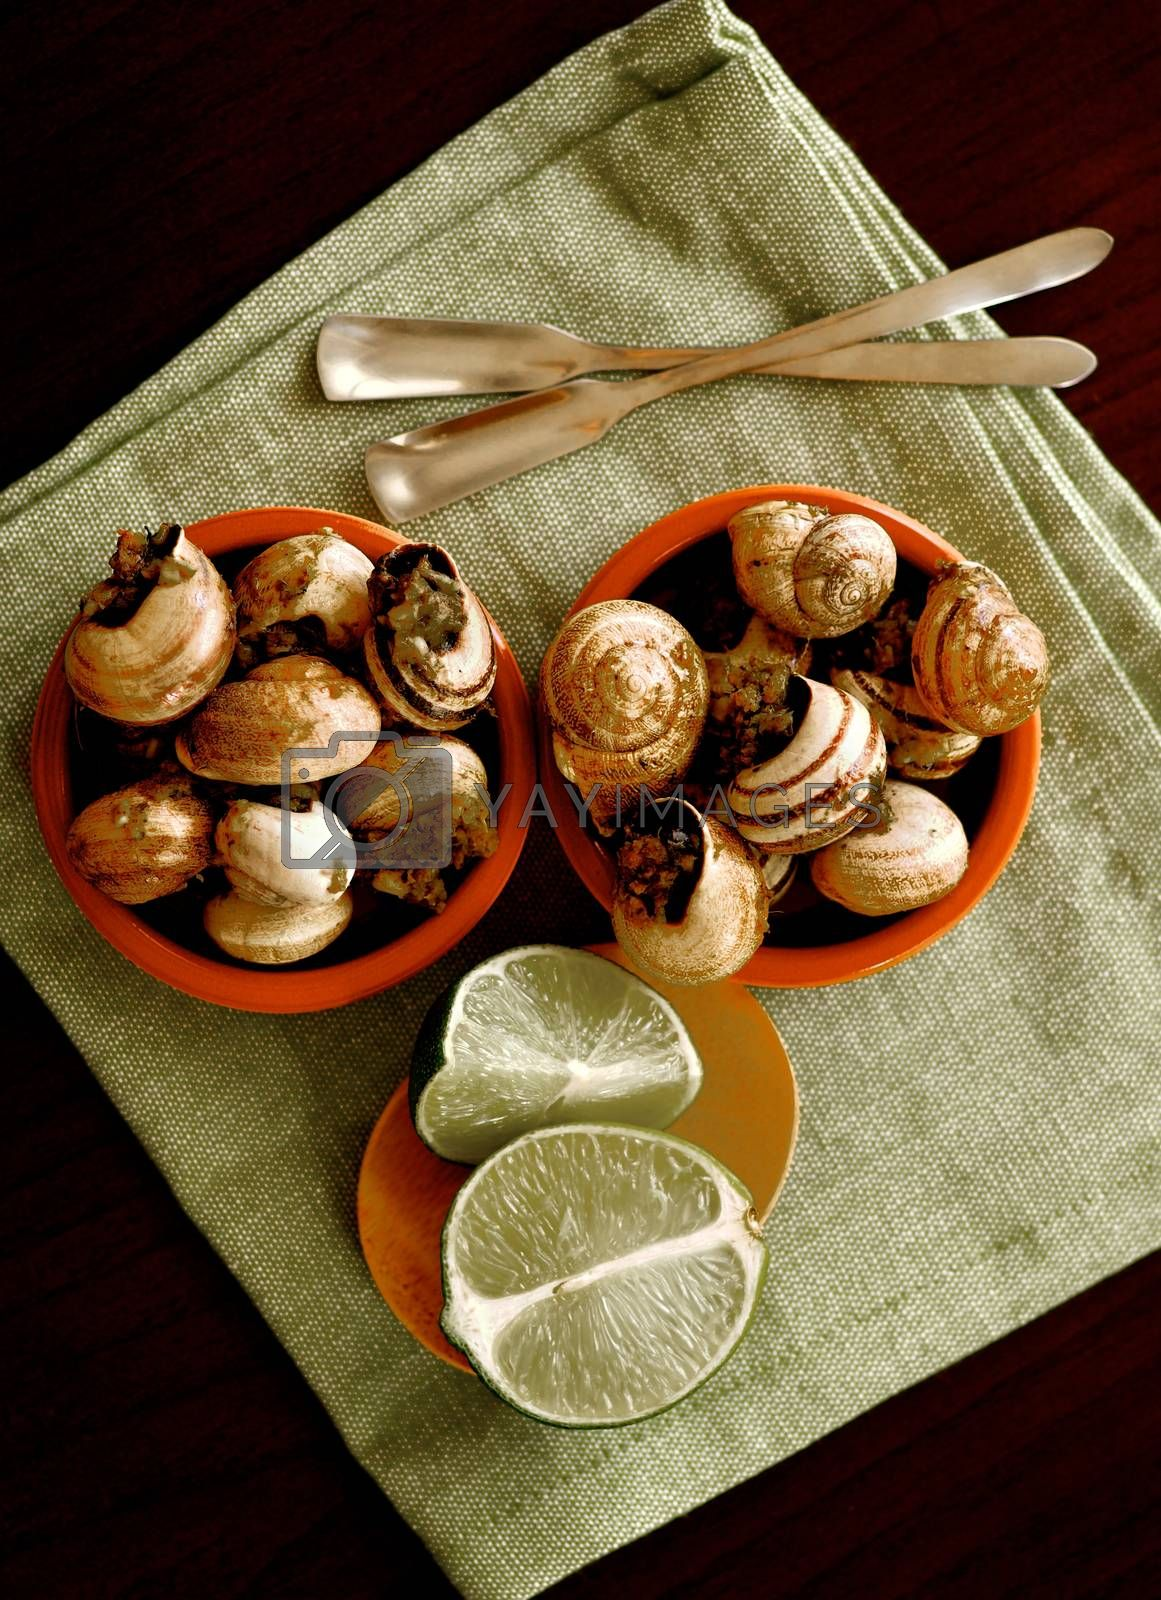 Two Bowls of Delicious Escargot with Garlic Butter, Silver Forks and Sliced Lime closeup on Green Napkin. Top View